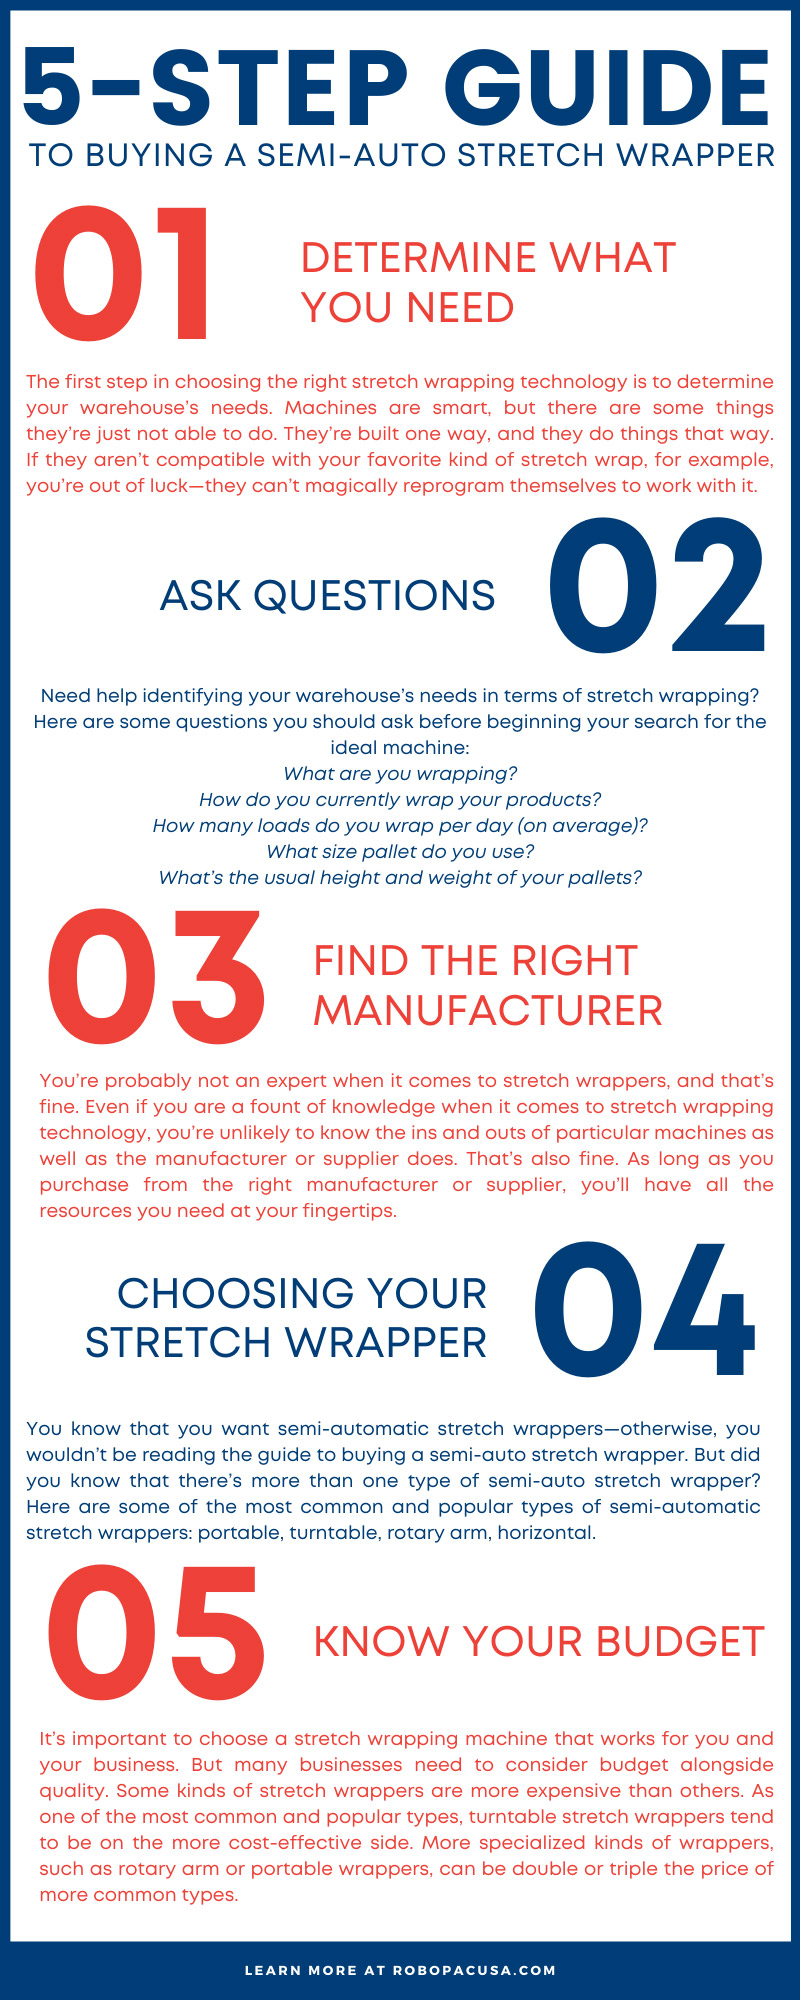 5-Step Guide To Buying a Semi-Auto Stretch Wrapper